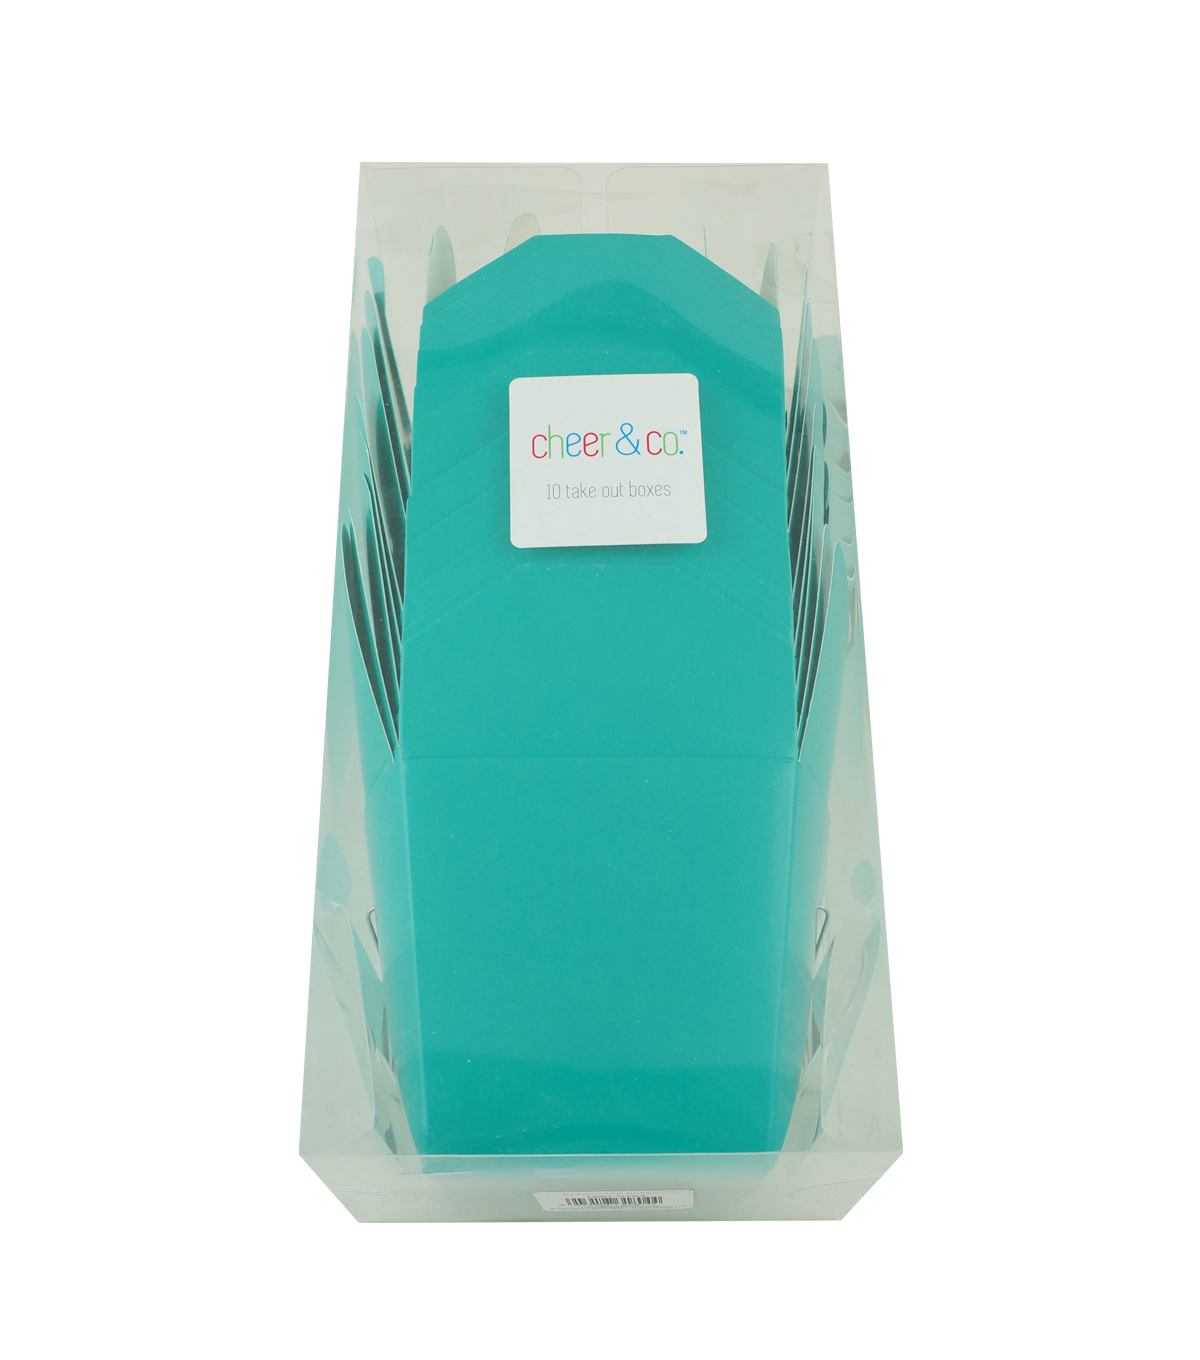 Cheer & Co 10ct Take Out Boxes-Teal